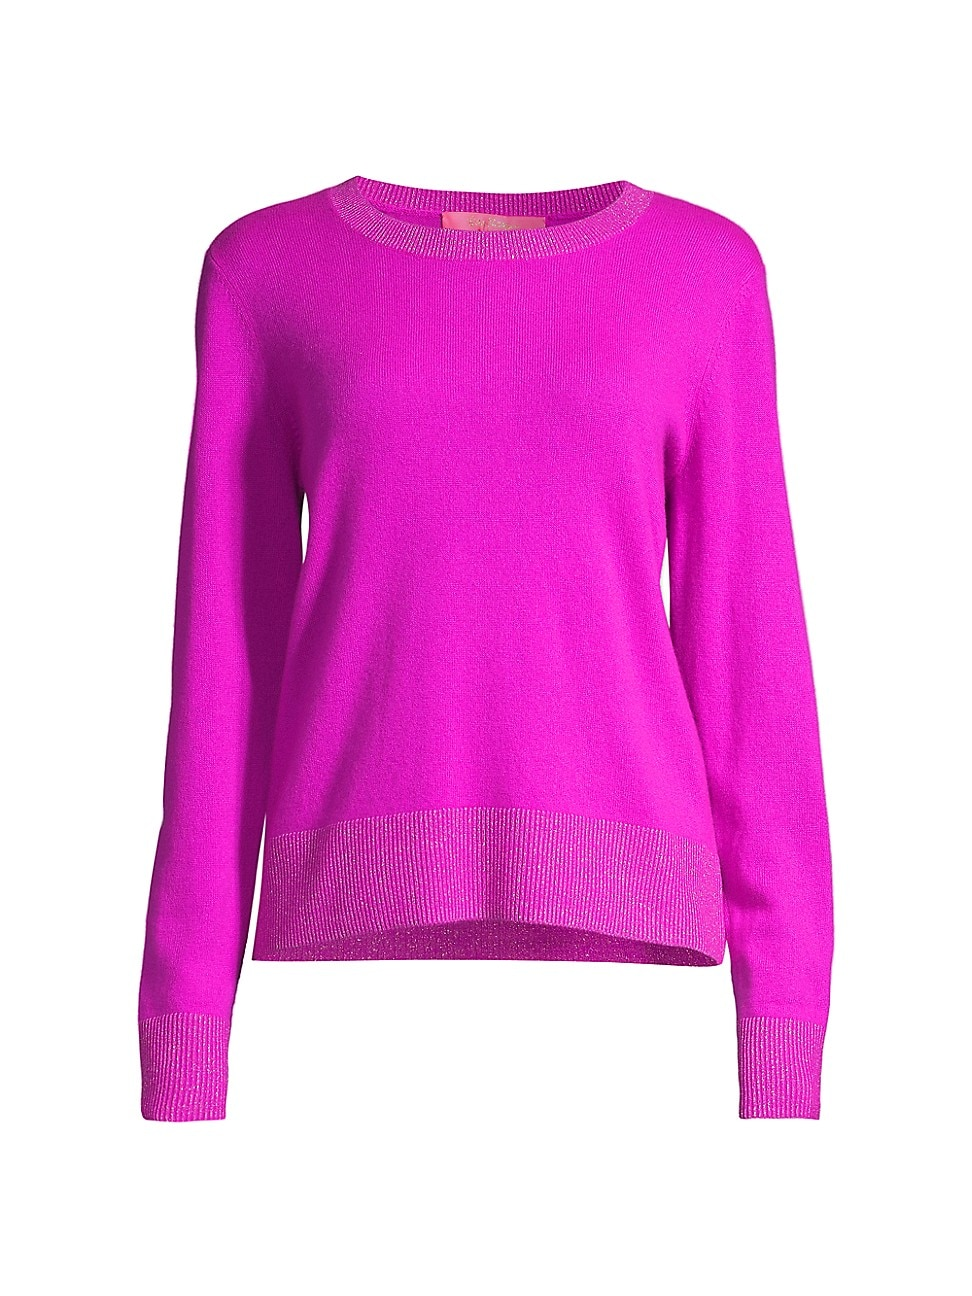 Lilly Pulitzer WOMEN'S PRITA CASHMERE SWEATER